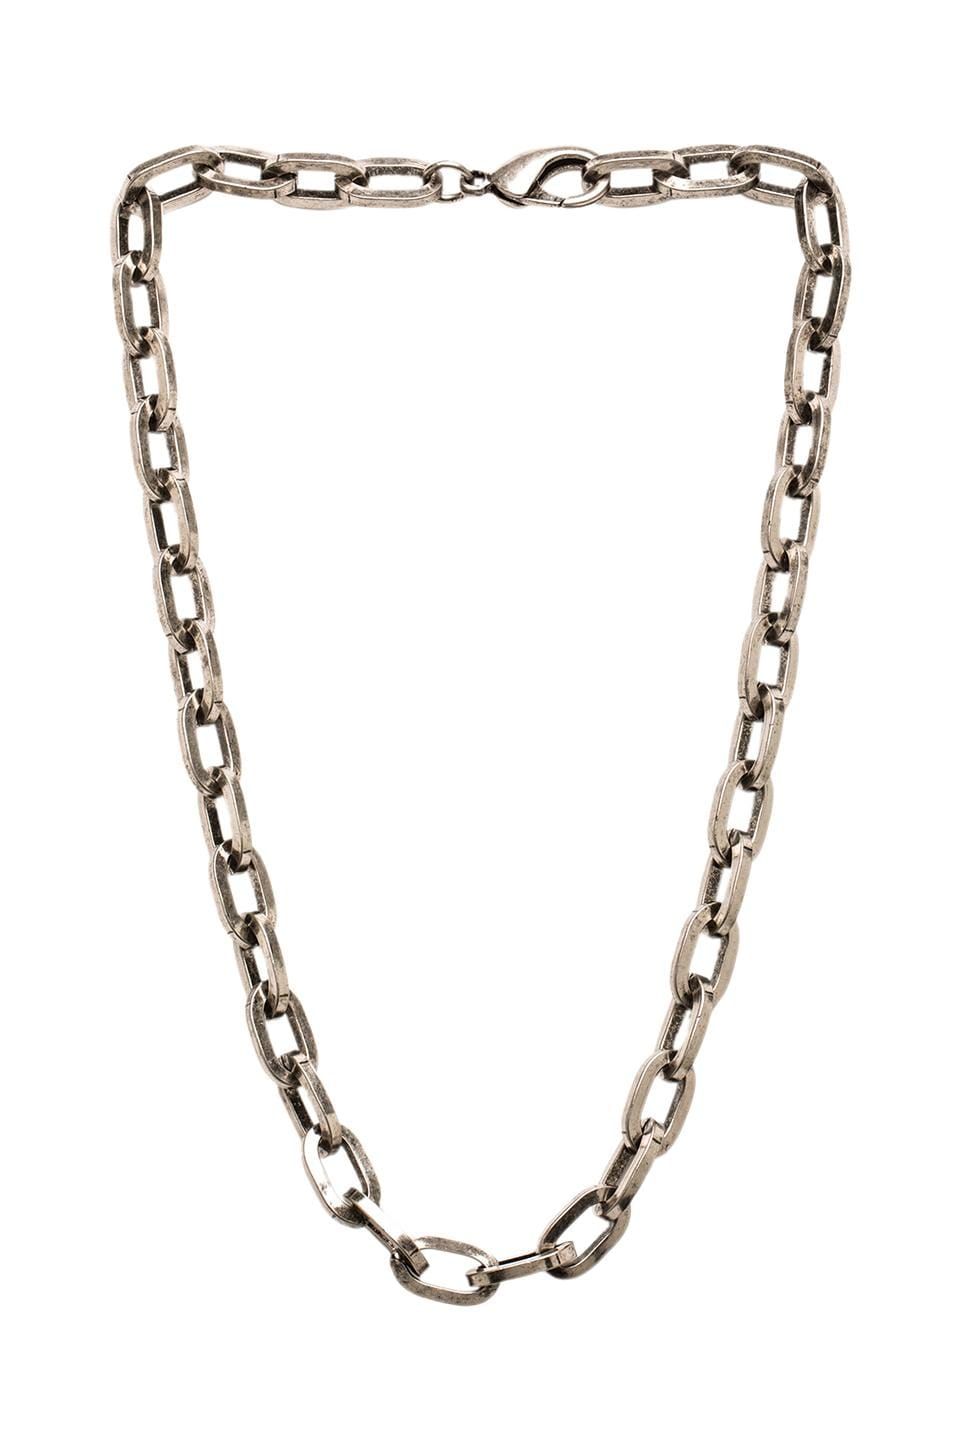 Luv AJ The Link Necklace in Antique Nickel